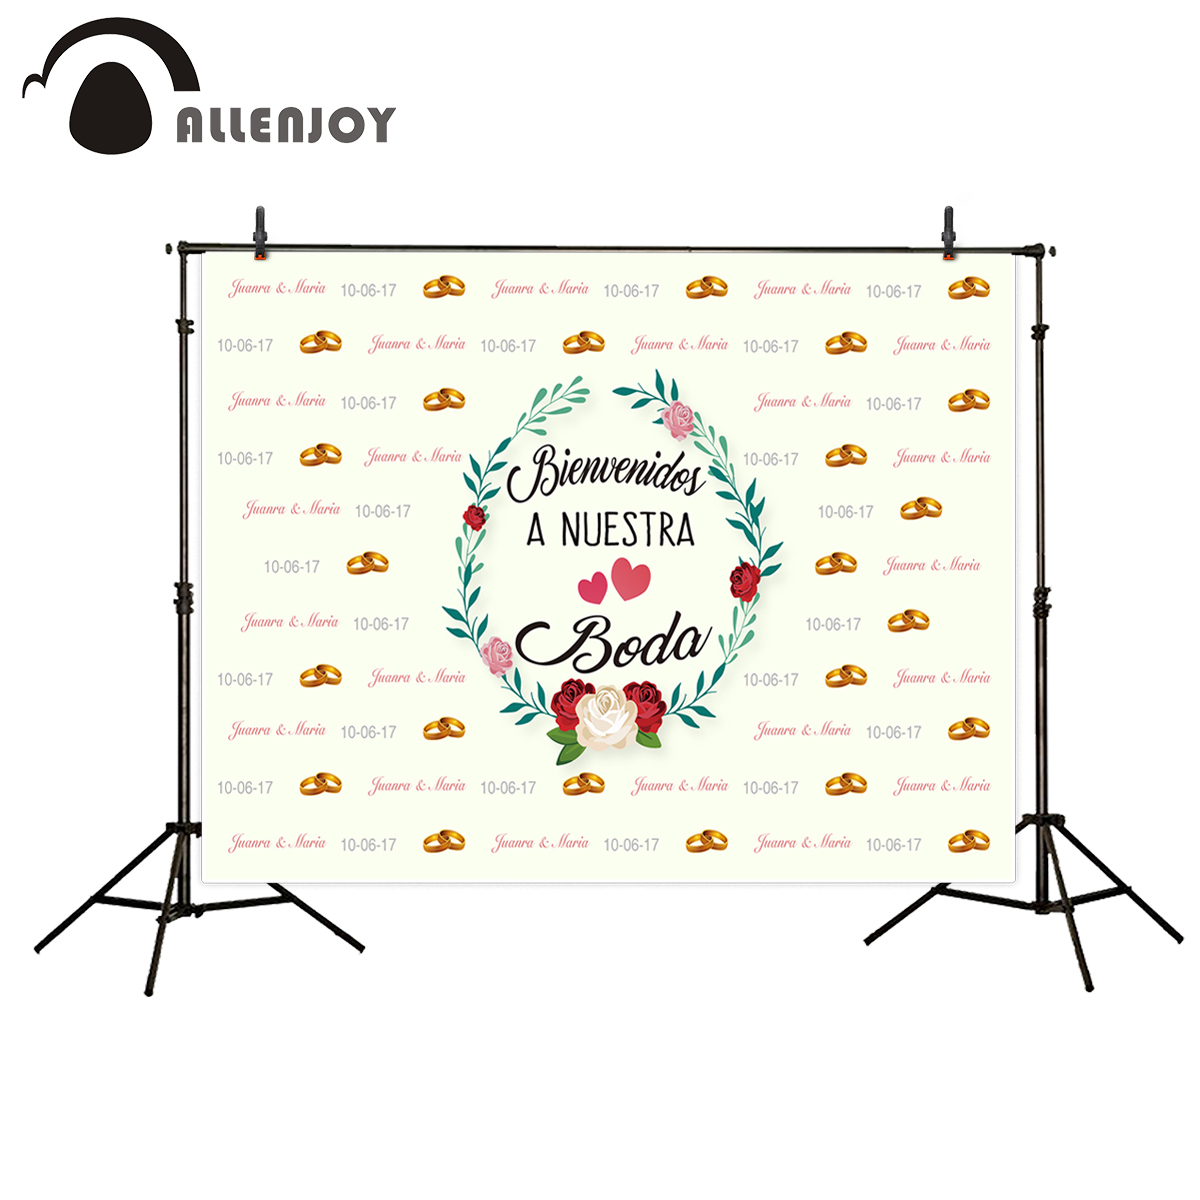 Allenjoy camera photography Wedding background rings flowers custom name and date backgrounds for photo studio fond studio photo